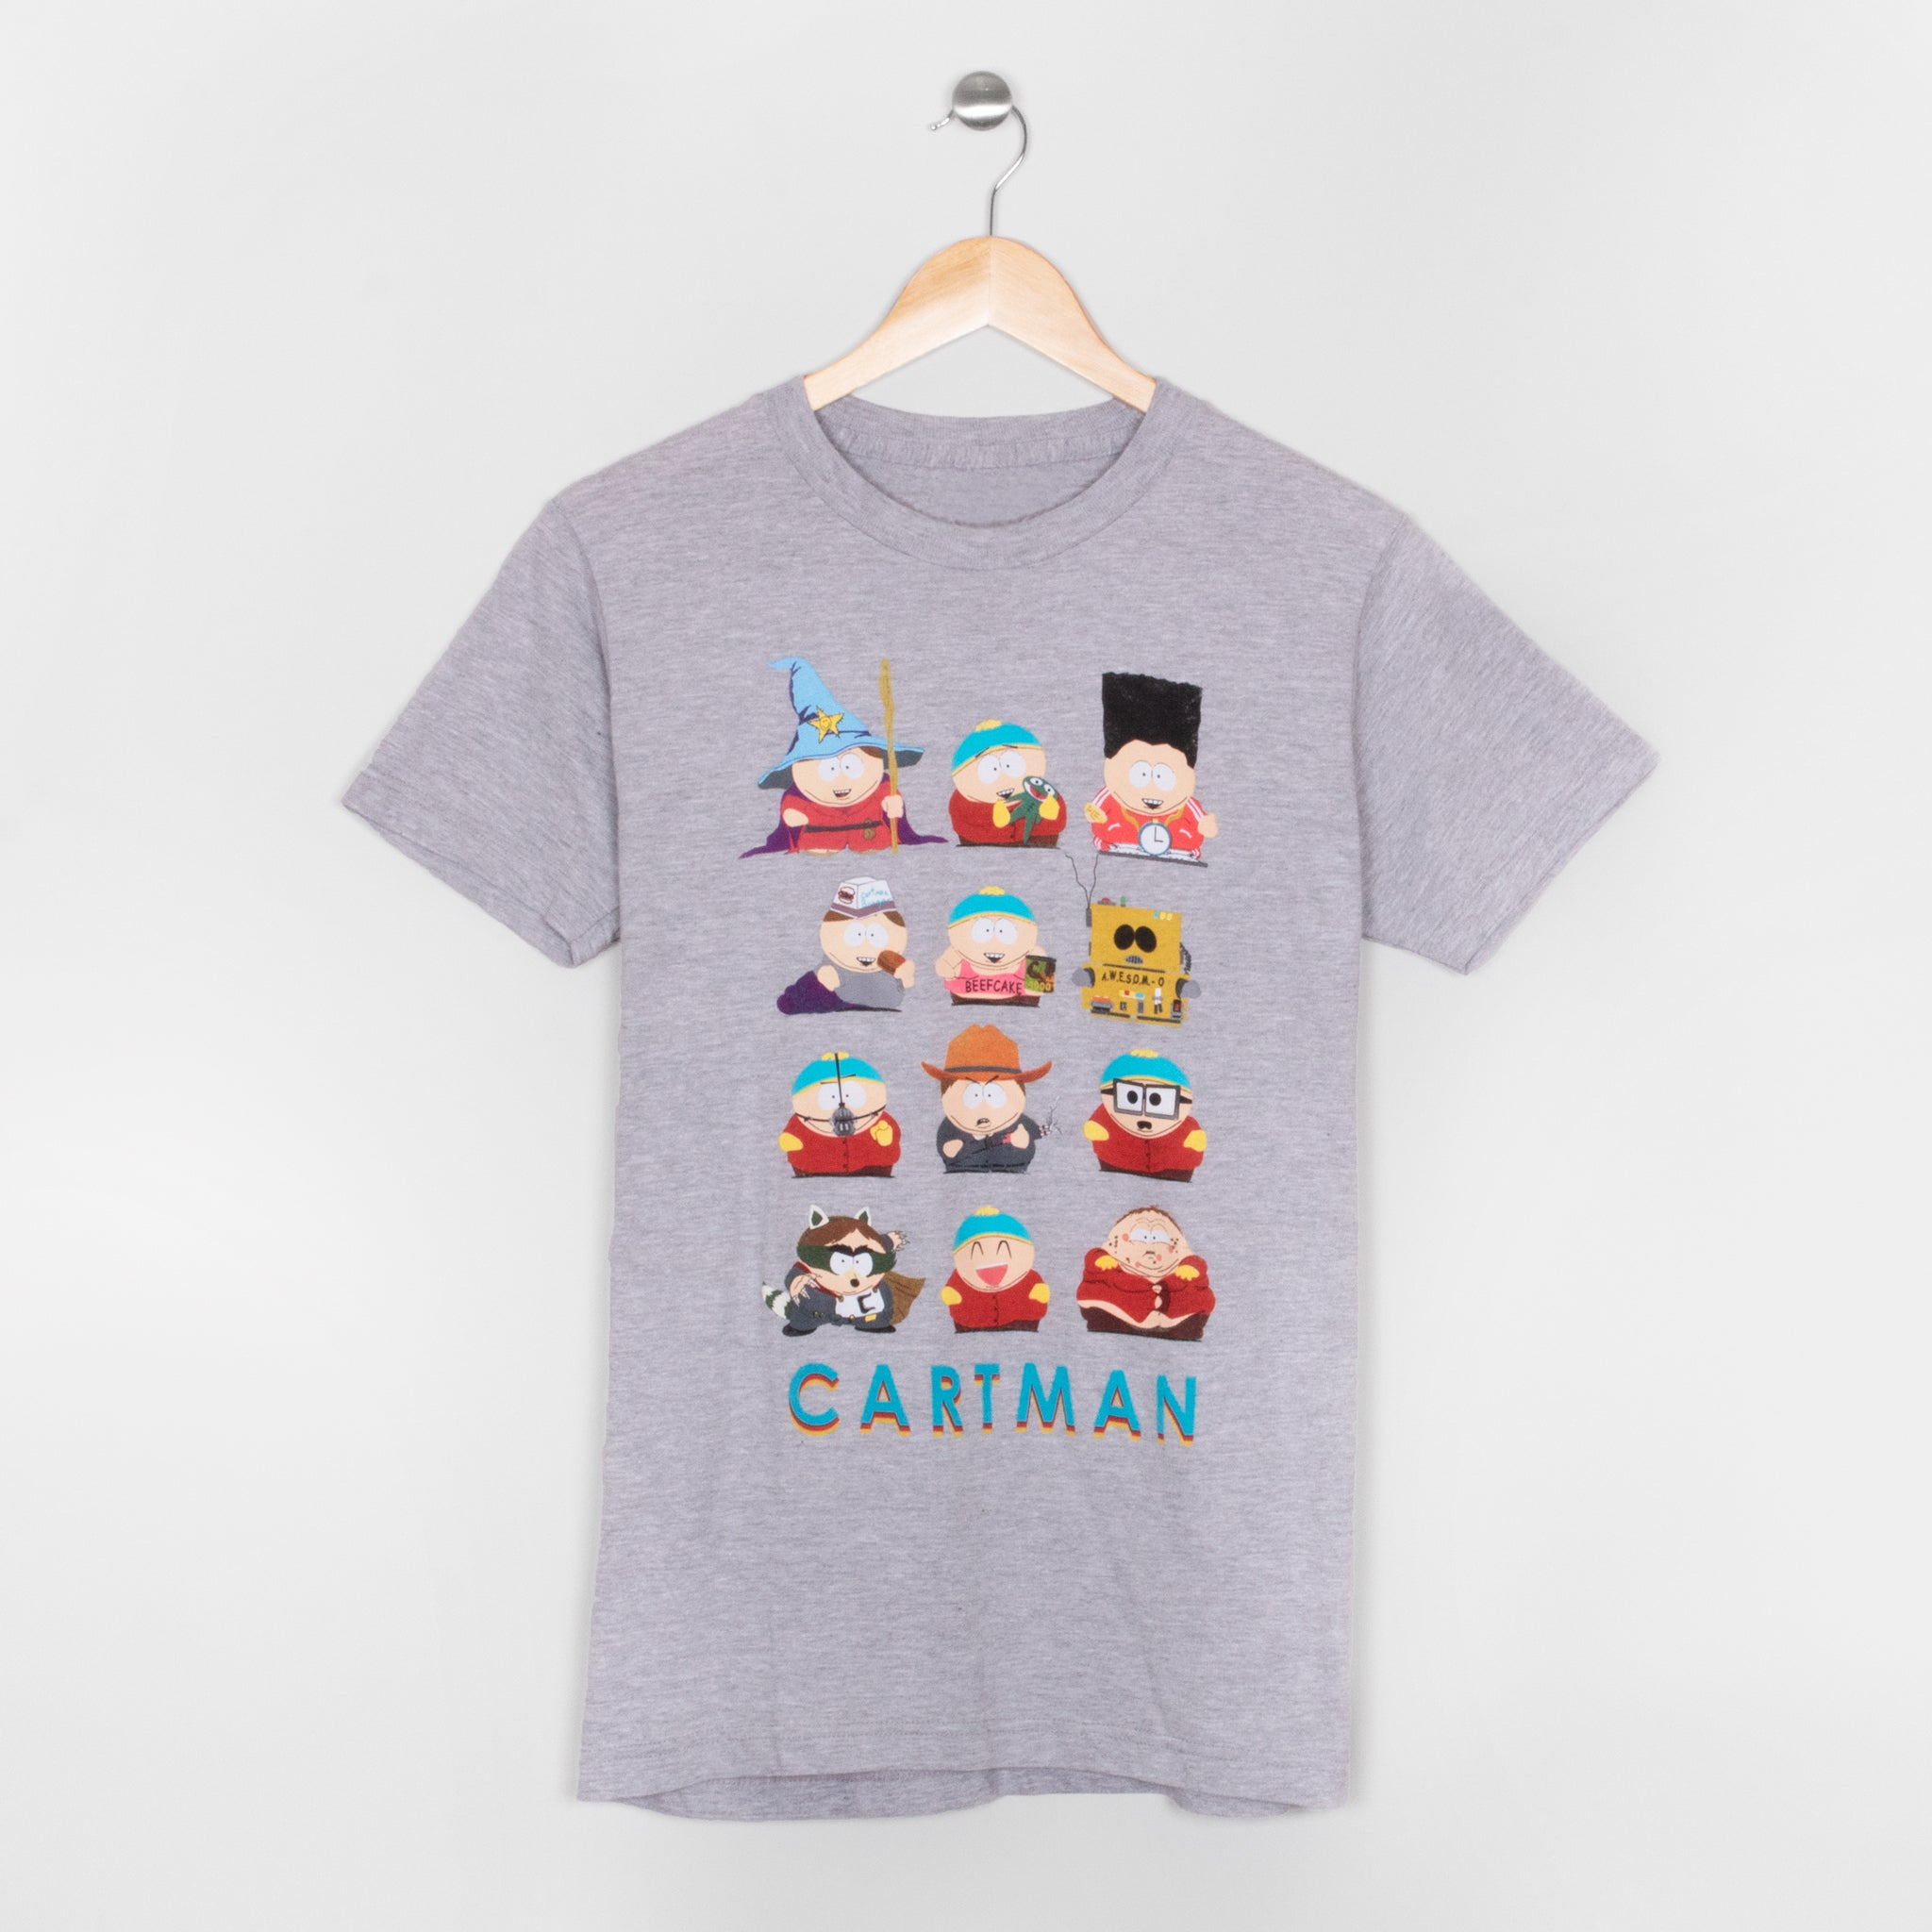 South Park - Cartman T-Shirt